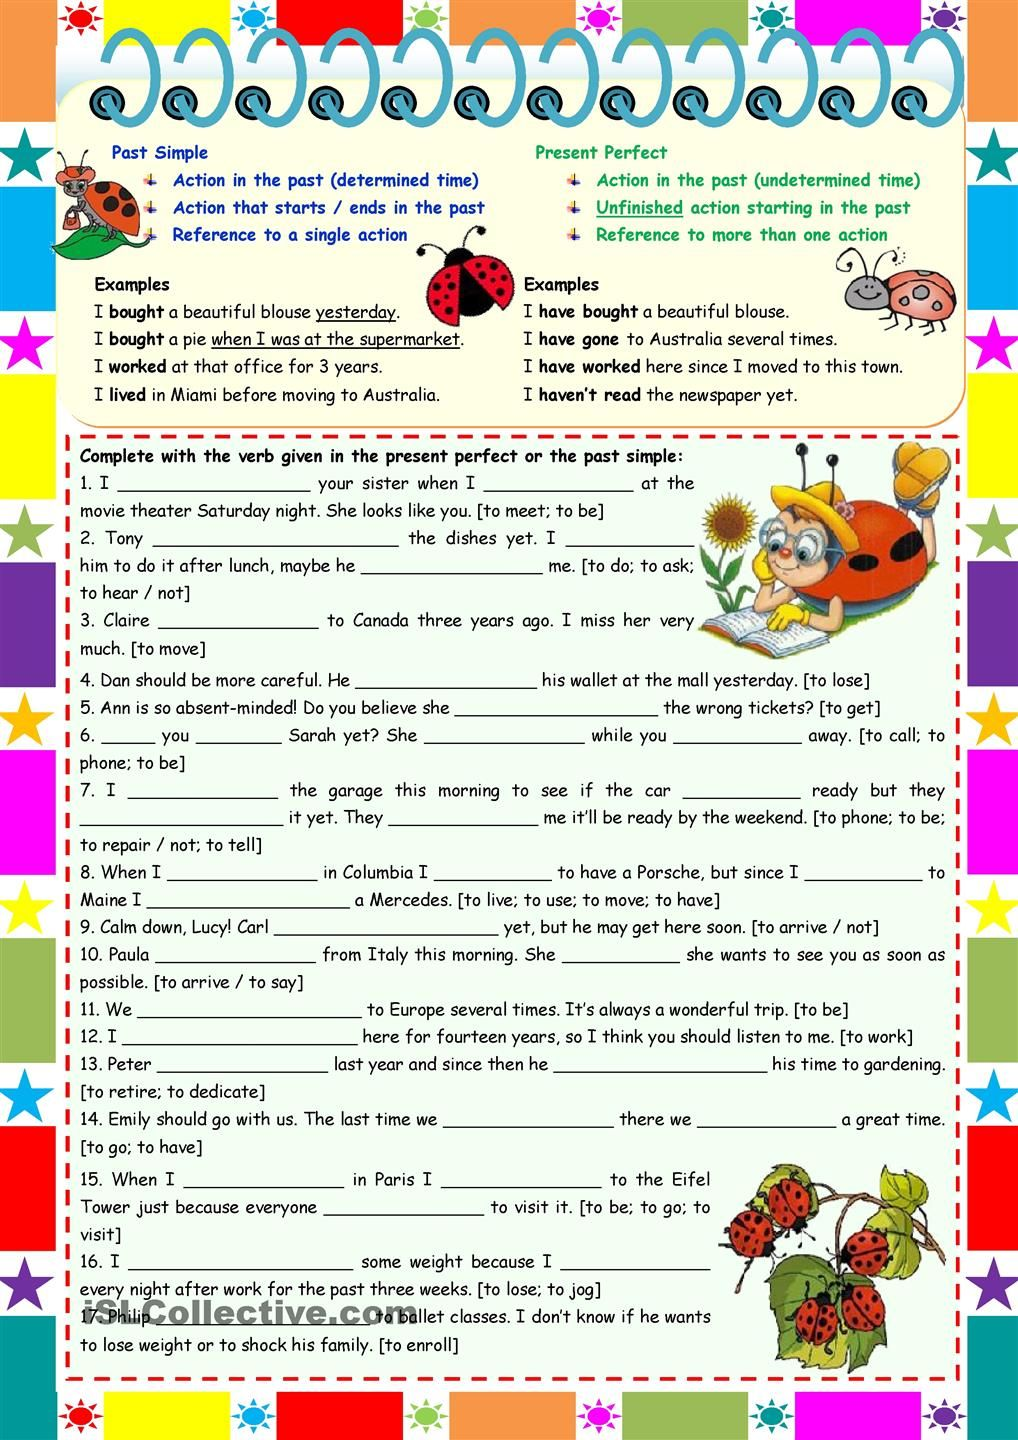 worksheet Simple Past Or Present Perfect Worksheet present perfect vs past simple grammar rules examples exercises